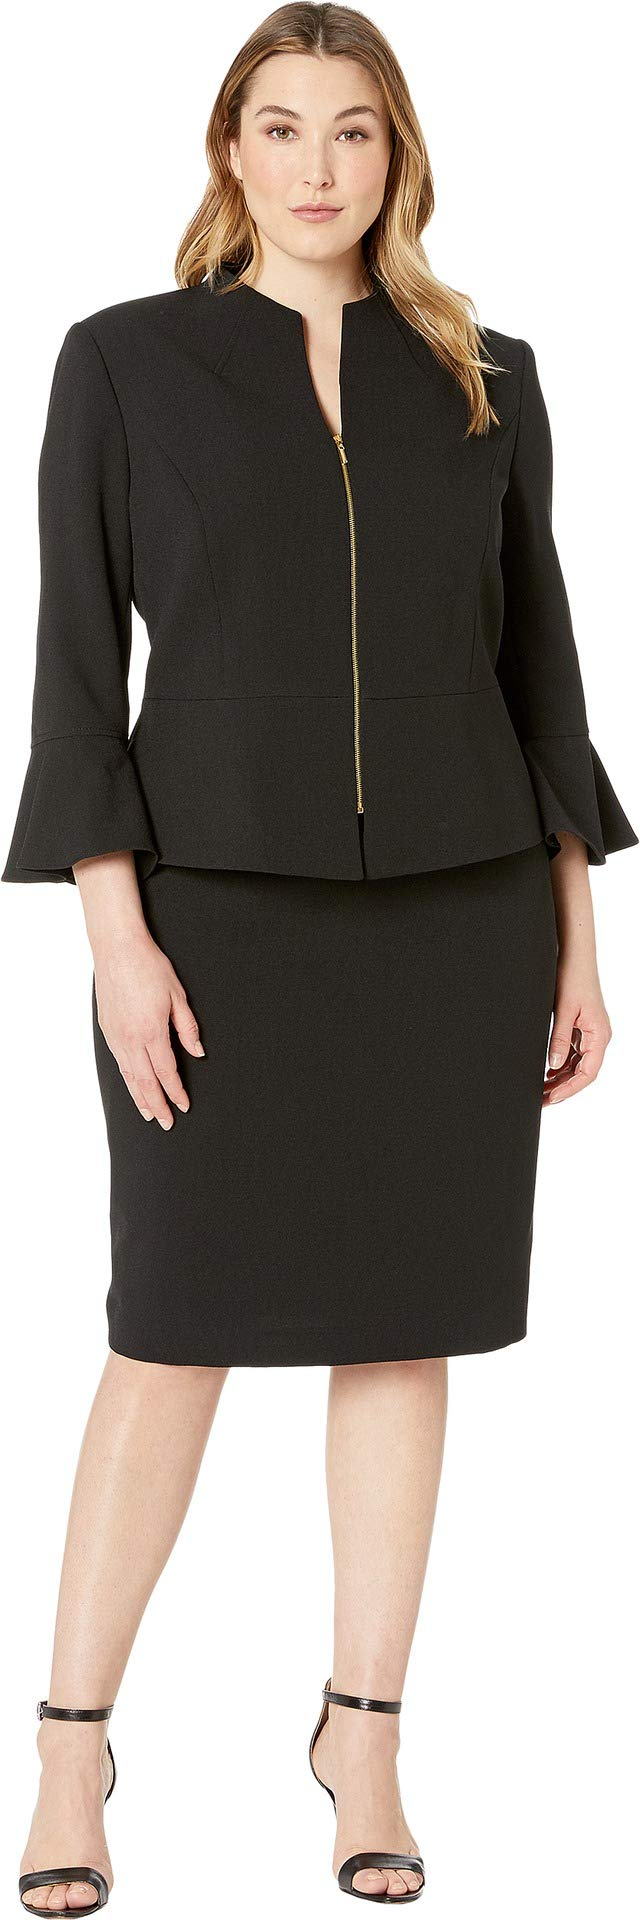 Tahari by ASL Women's Plus Size Skirt Suit with Collarless Jacket Black 18 W